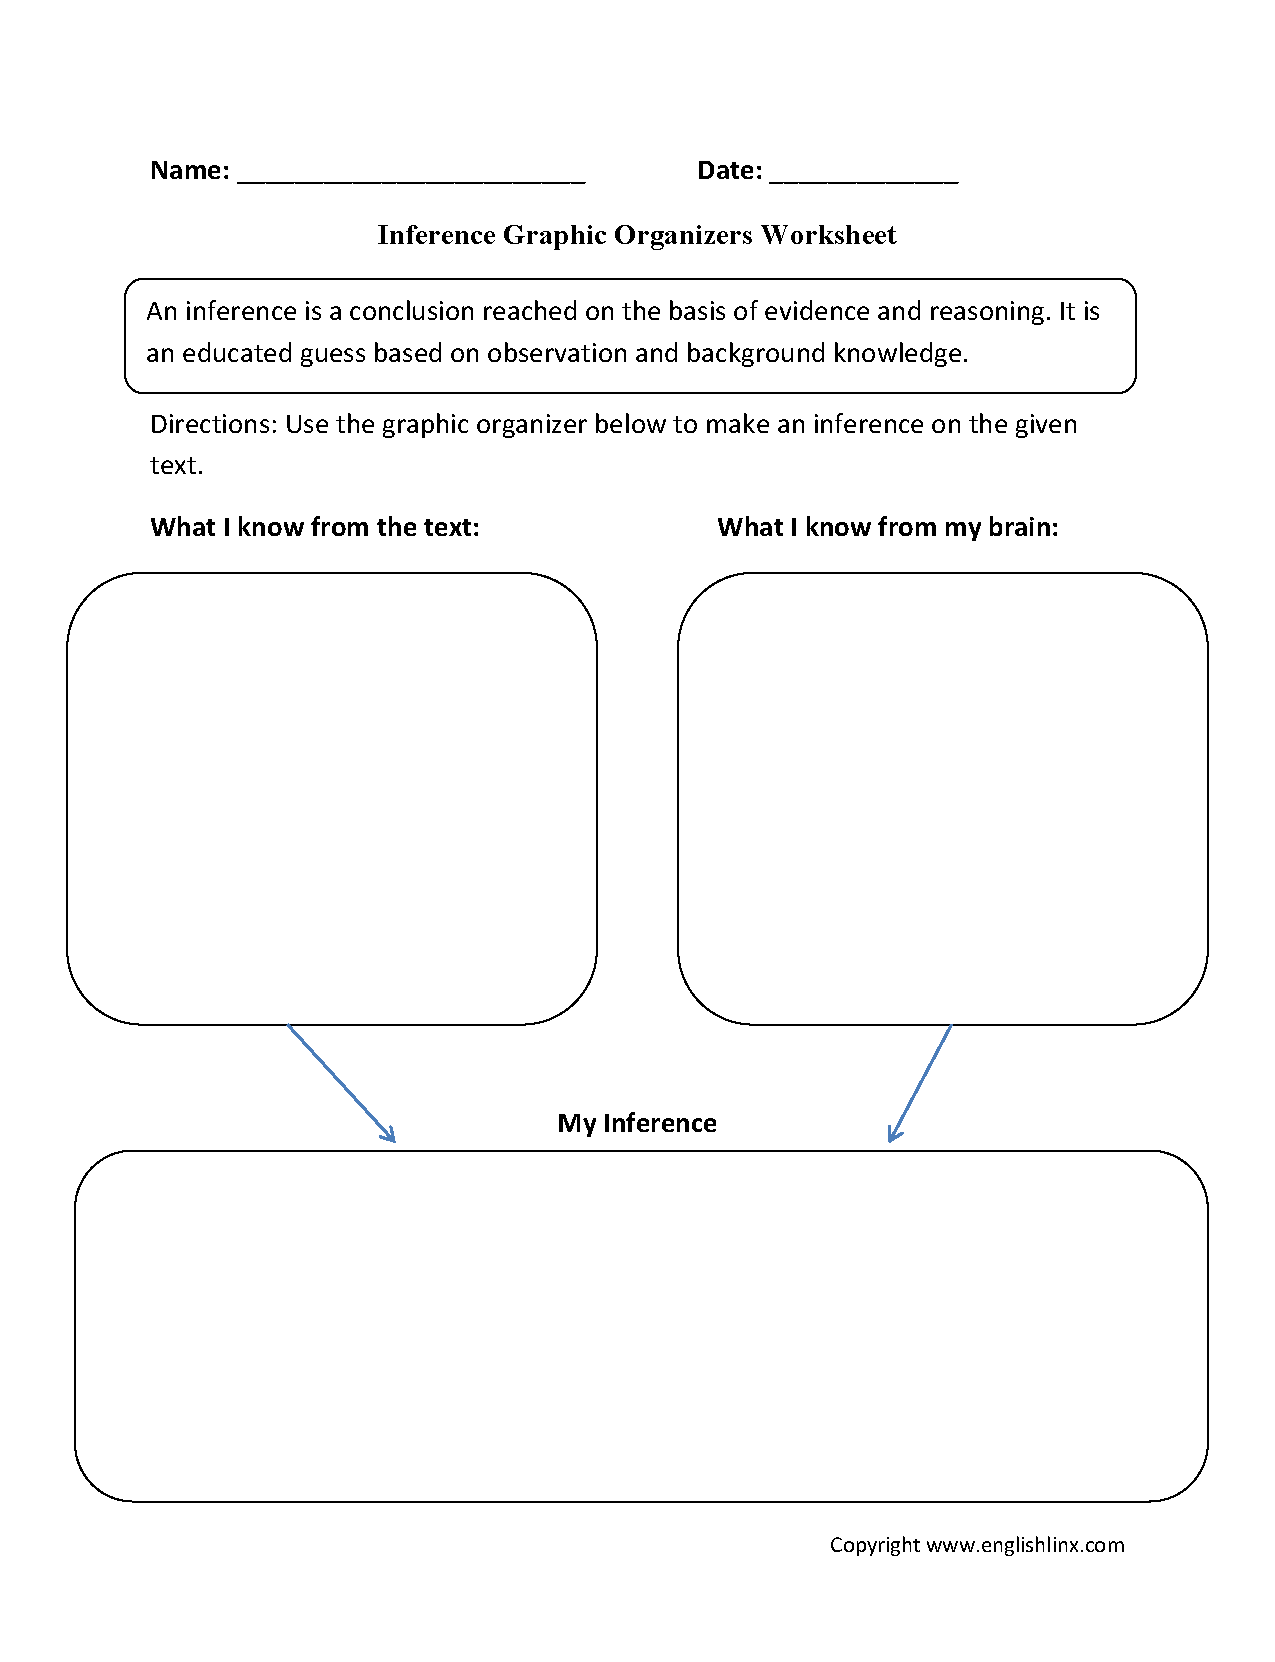 Free Worksheet Inferences Worksheet 4 inference worksheets 4th grade rringband graphic organizers organizers